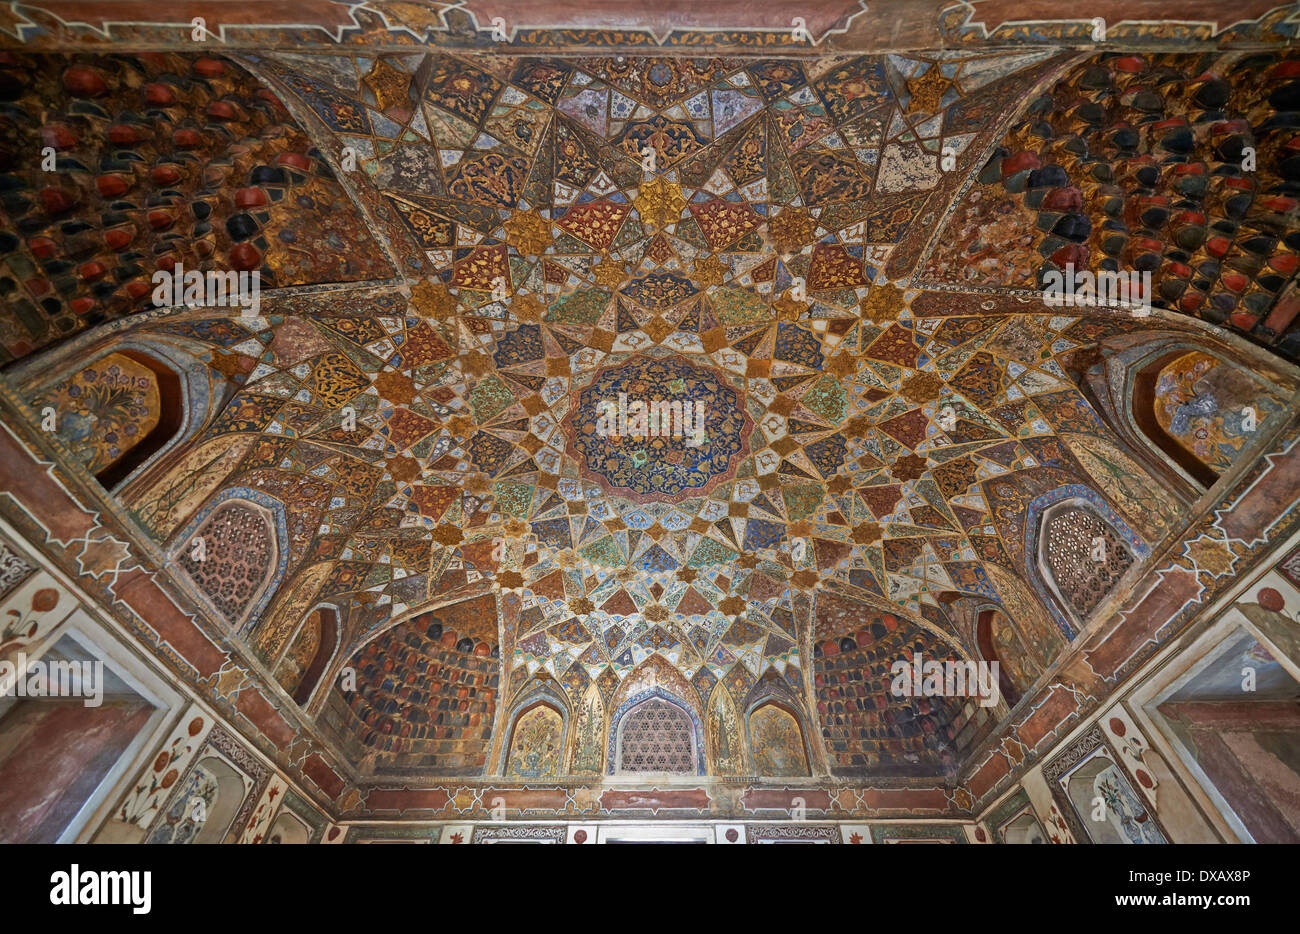 What Are Paintings On Tomb Walls Called